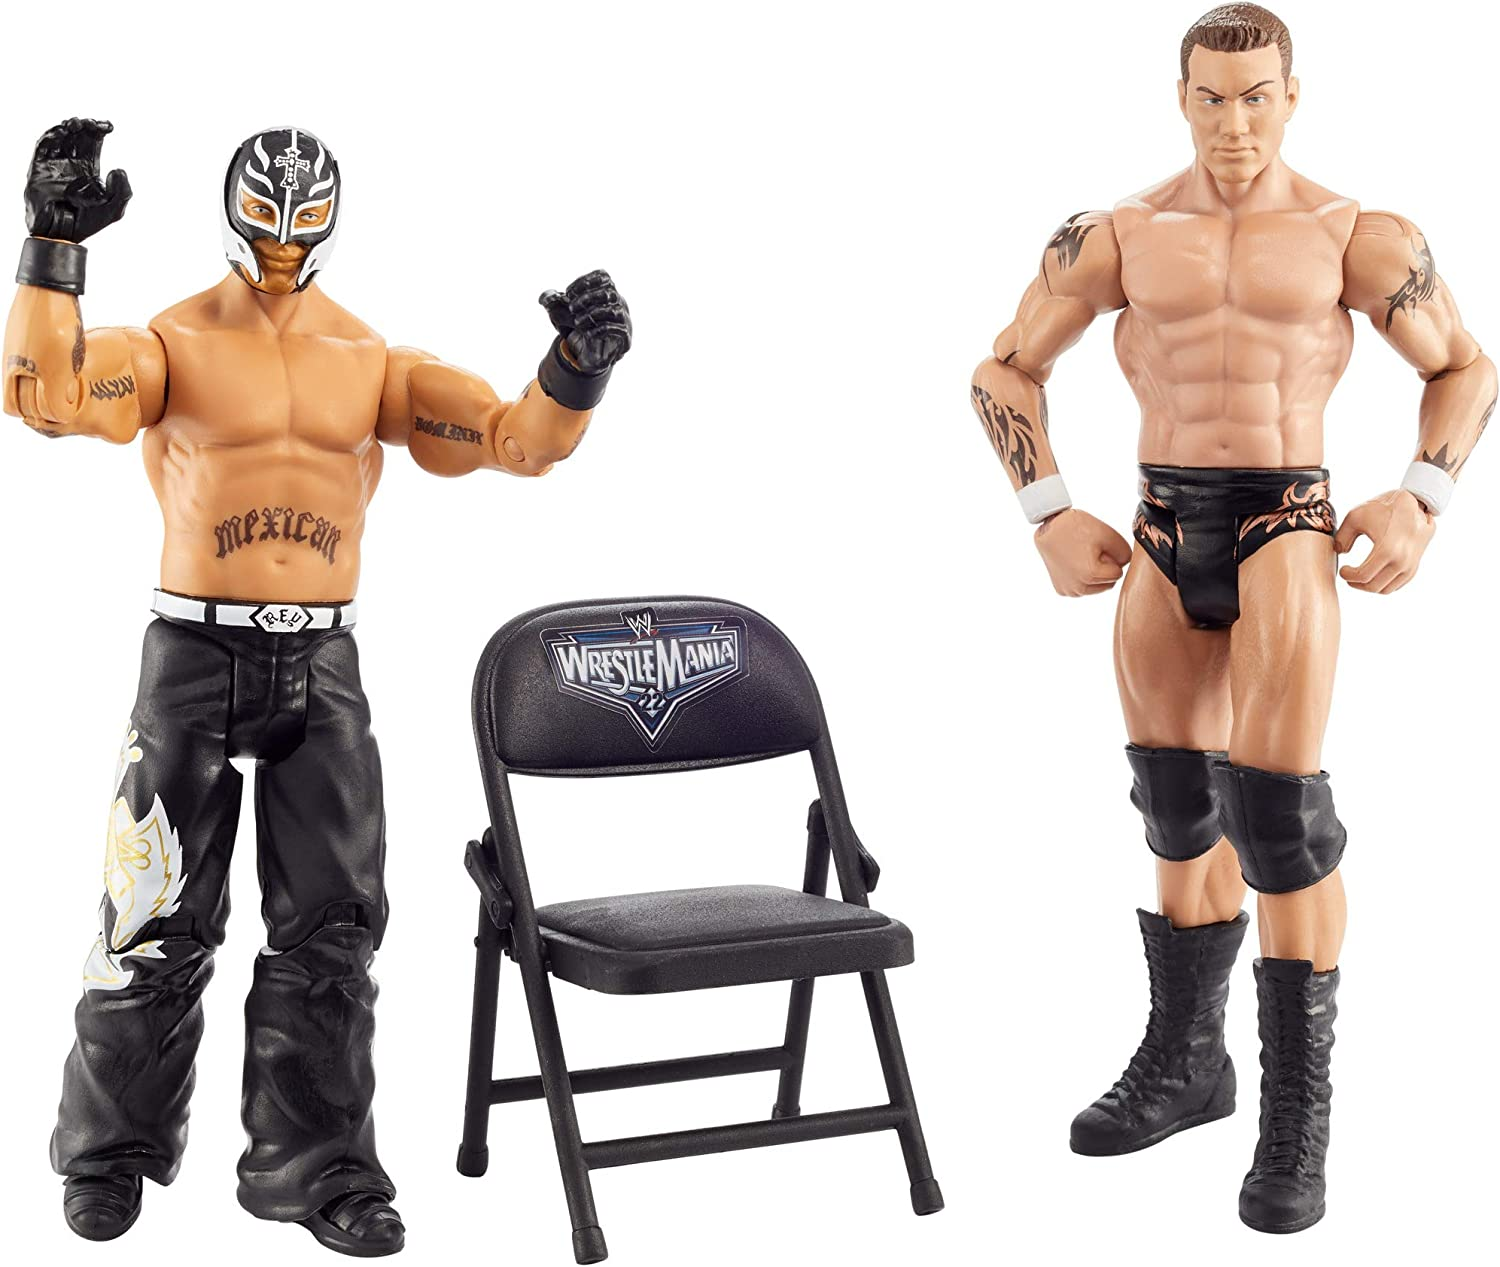 WWE Wrestlemania 2-Pack with 6-inch (15.24) Action Figures, Rey Mysterio & Randy Orton